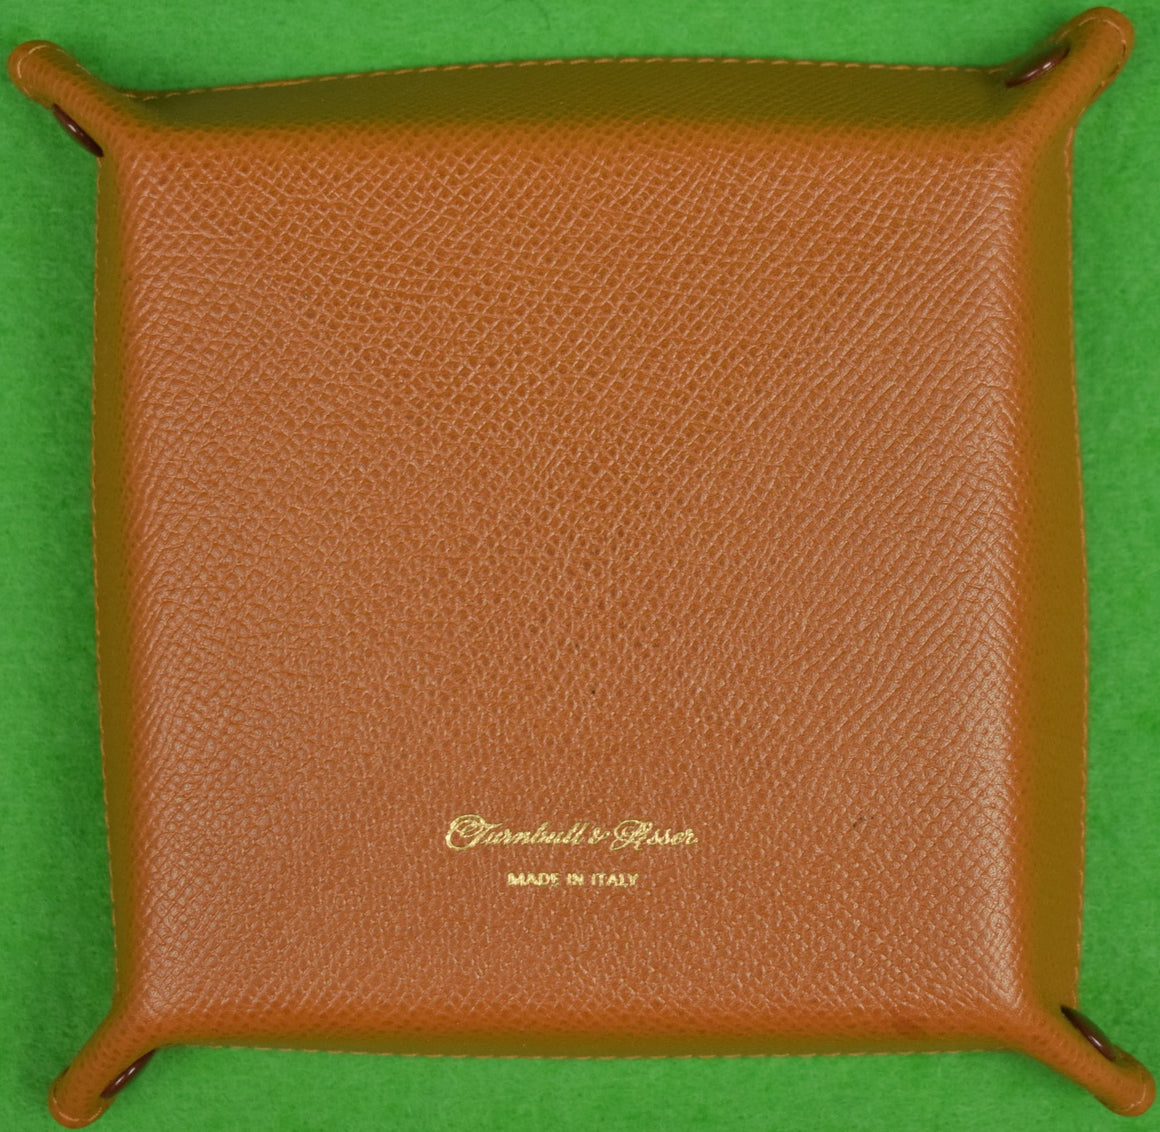 Turnbull & Asser Leather Travel/ Cufflink Tray